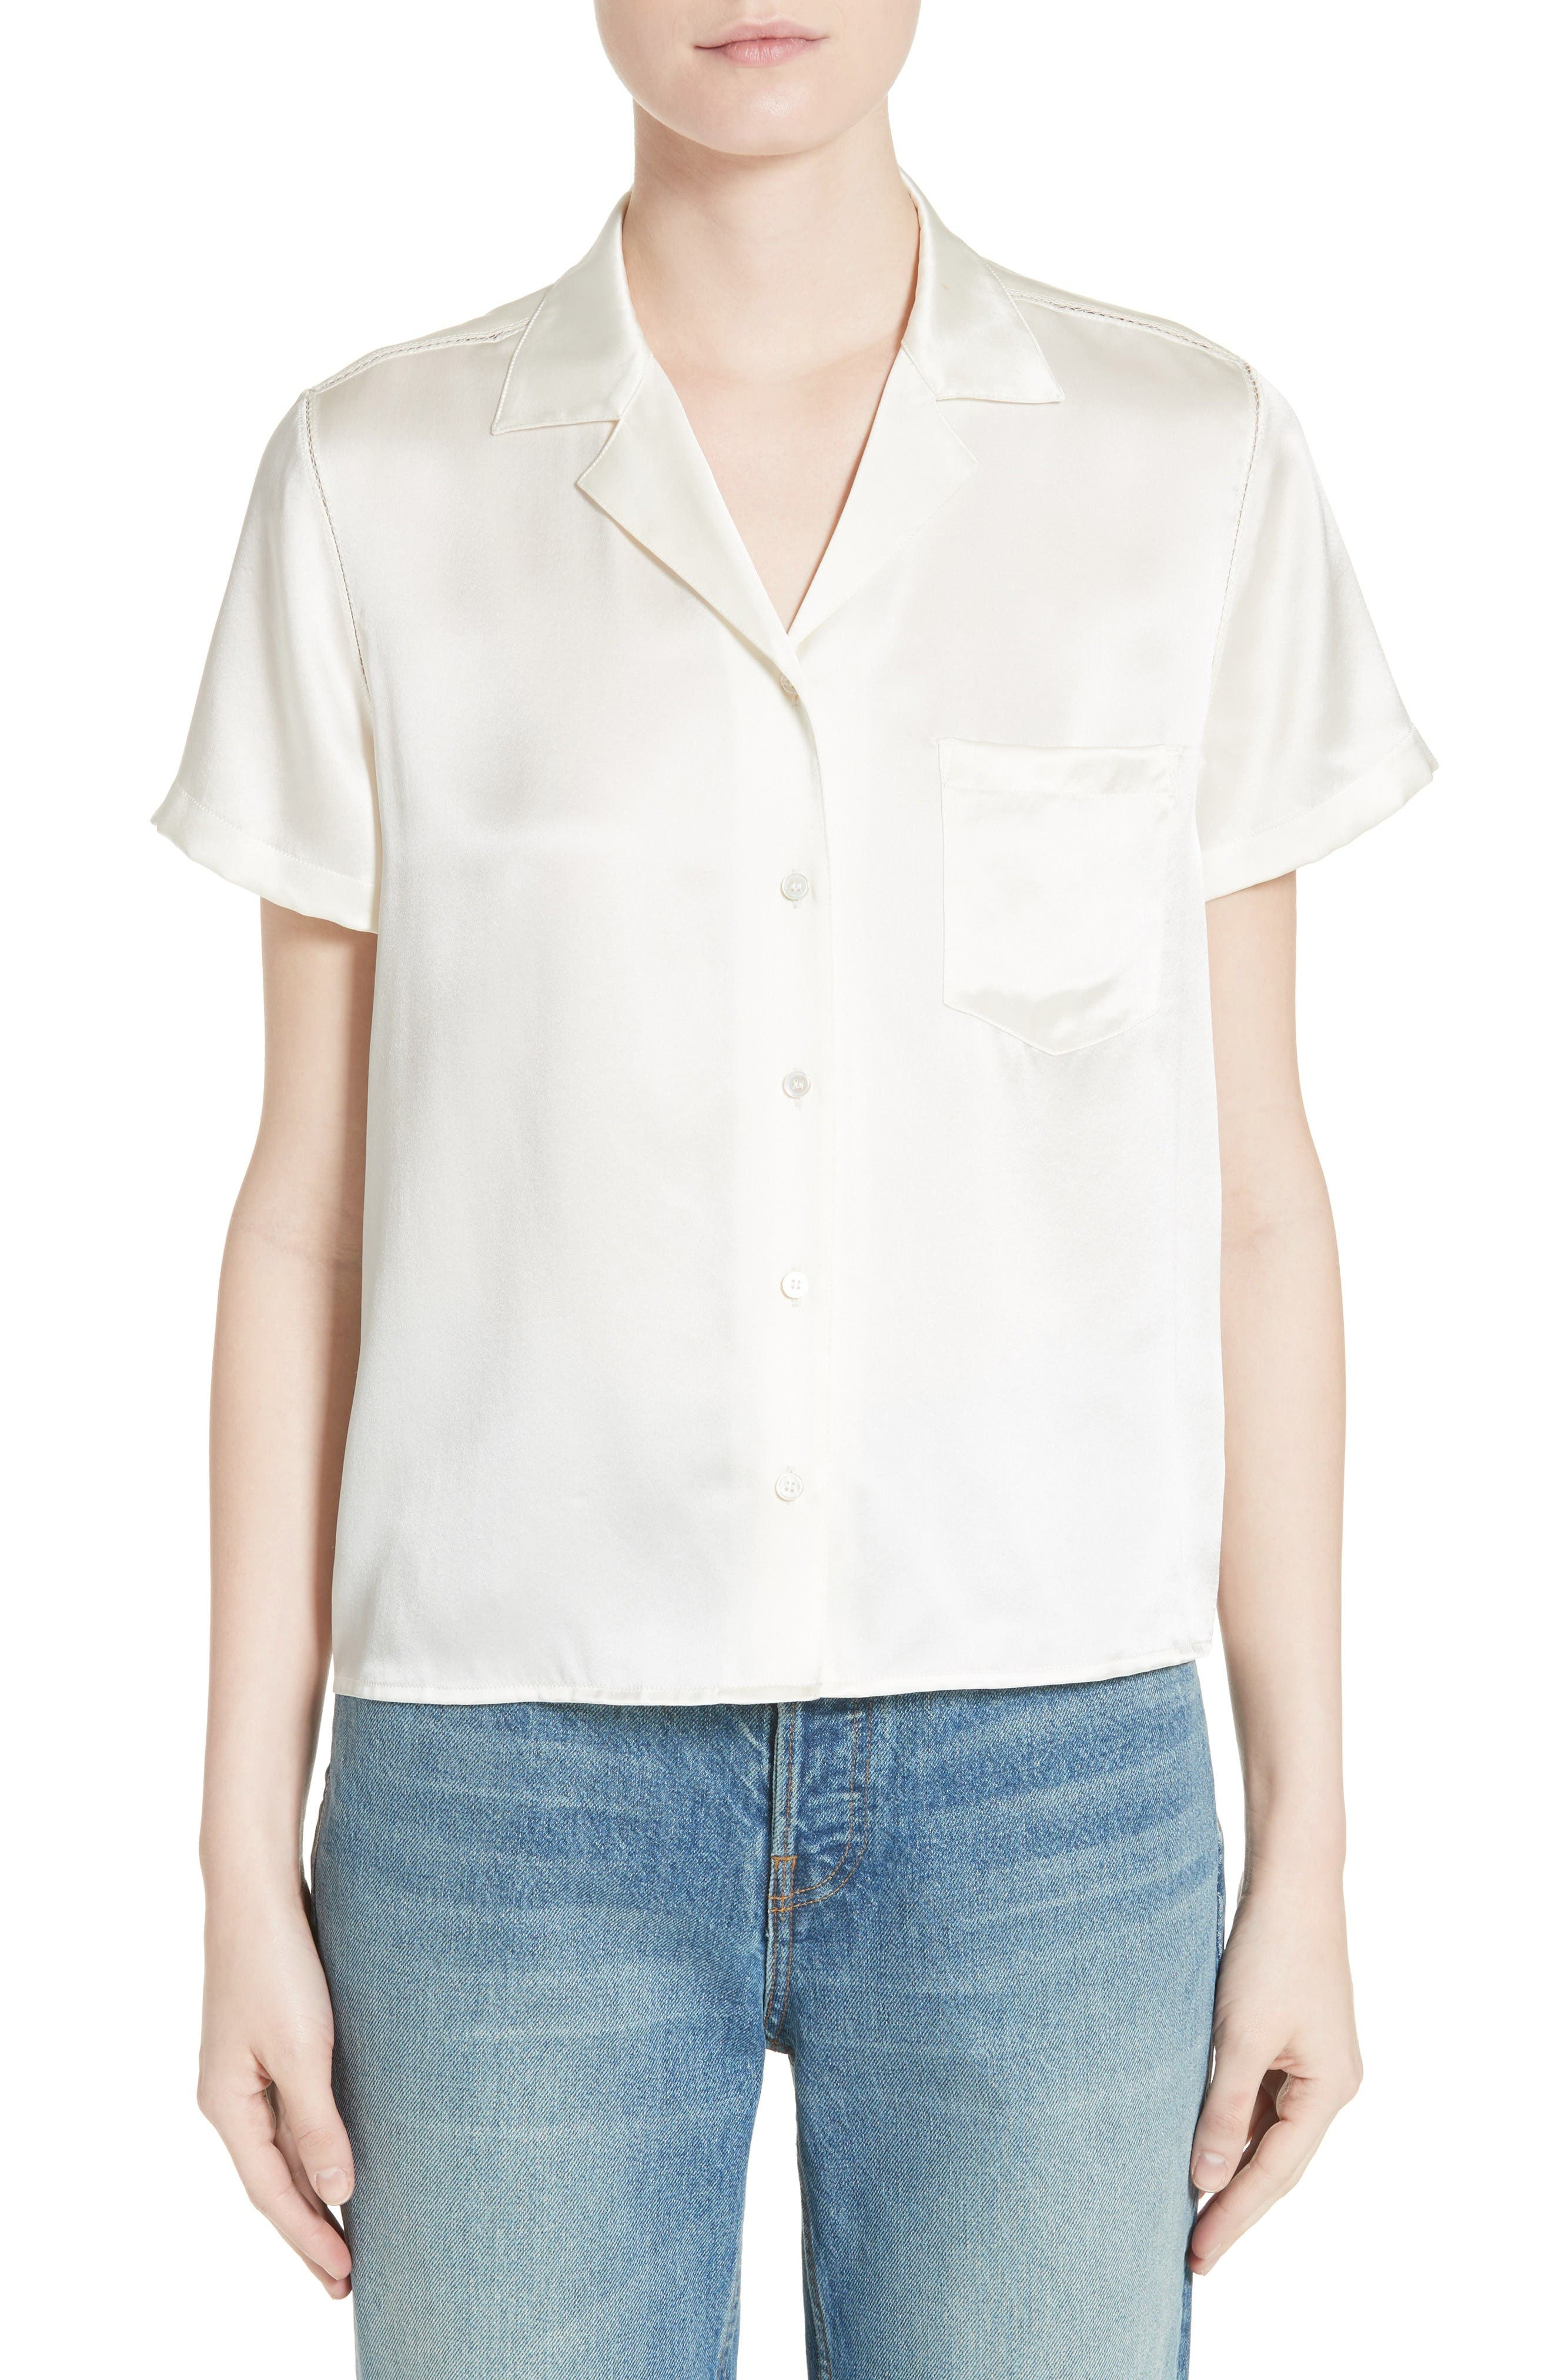 Alternate Image 1 Selected - T by Alexander Wang Silk Shirt